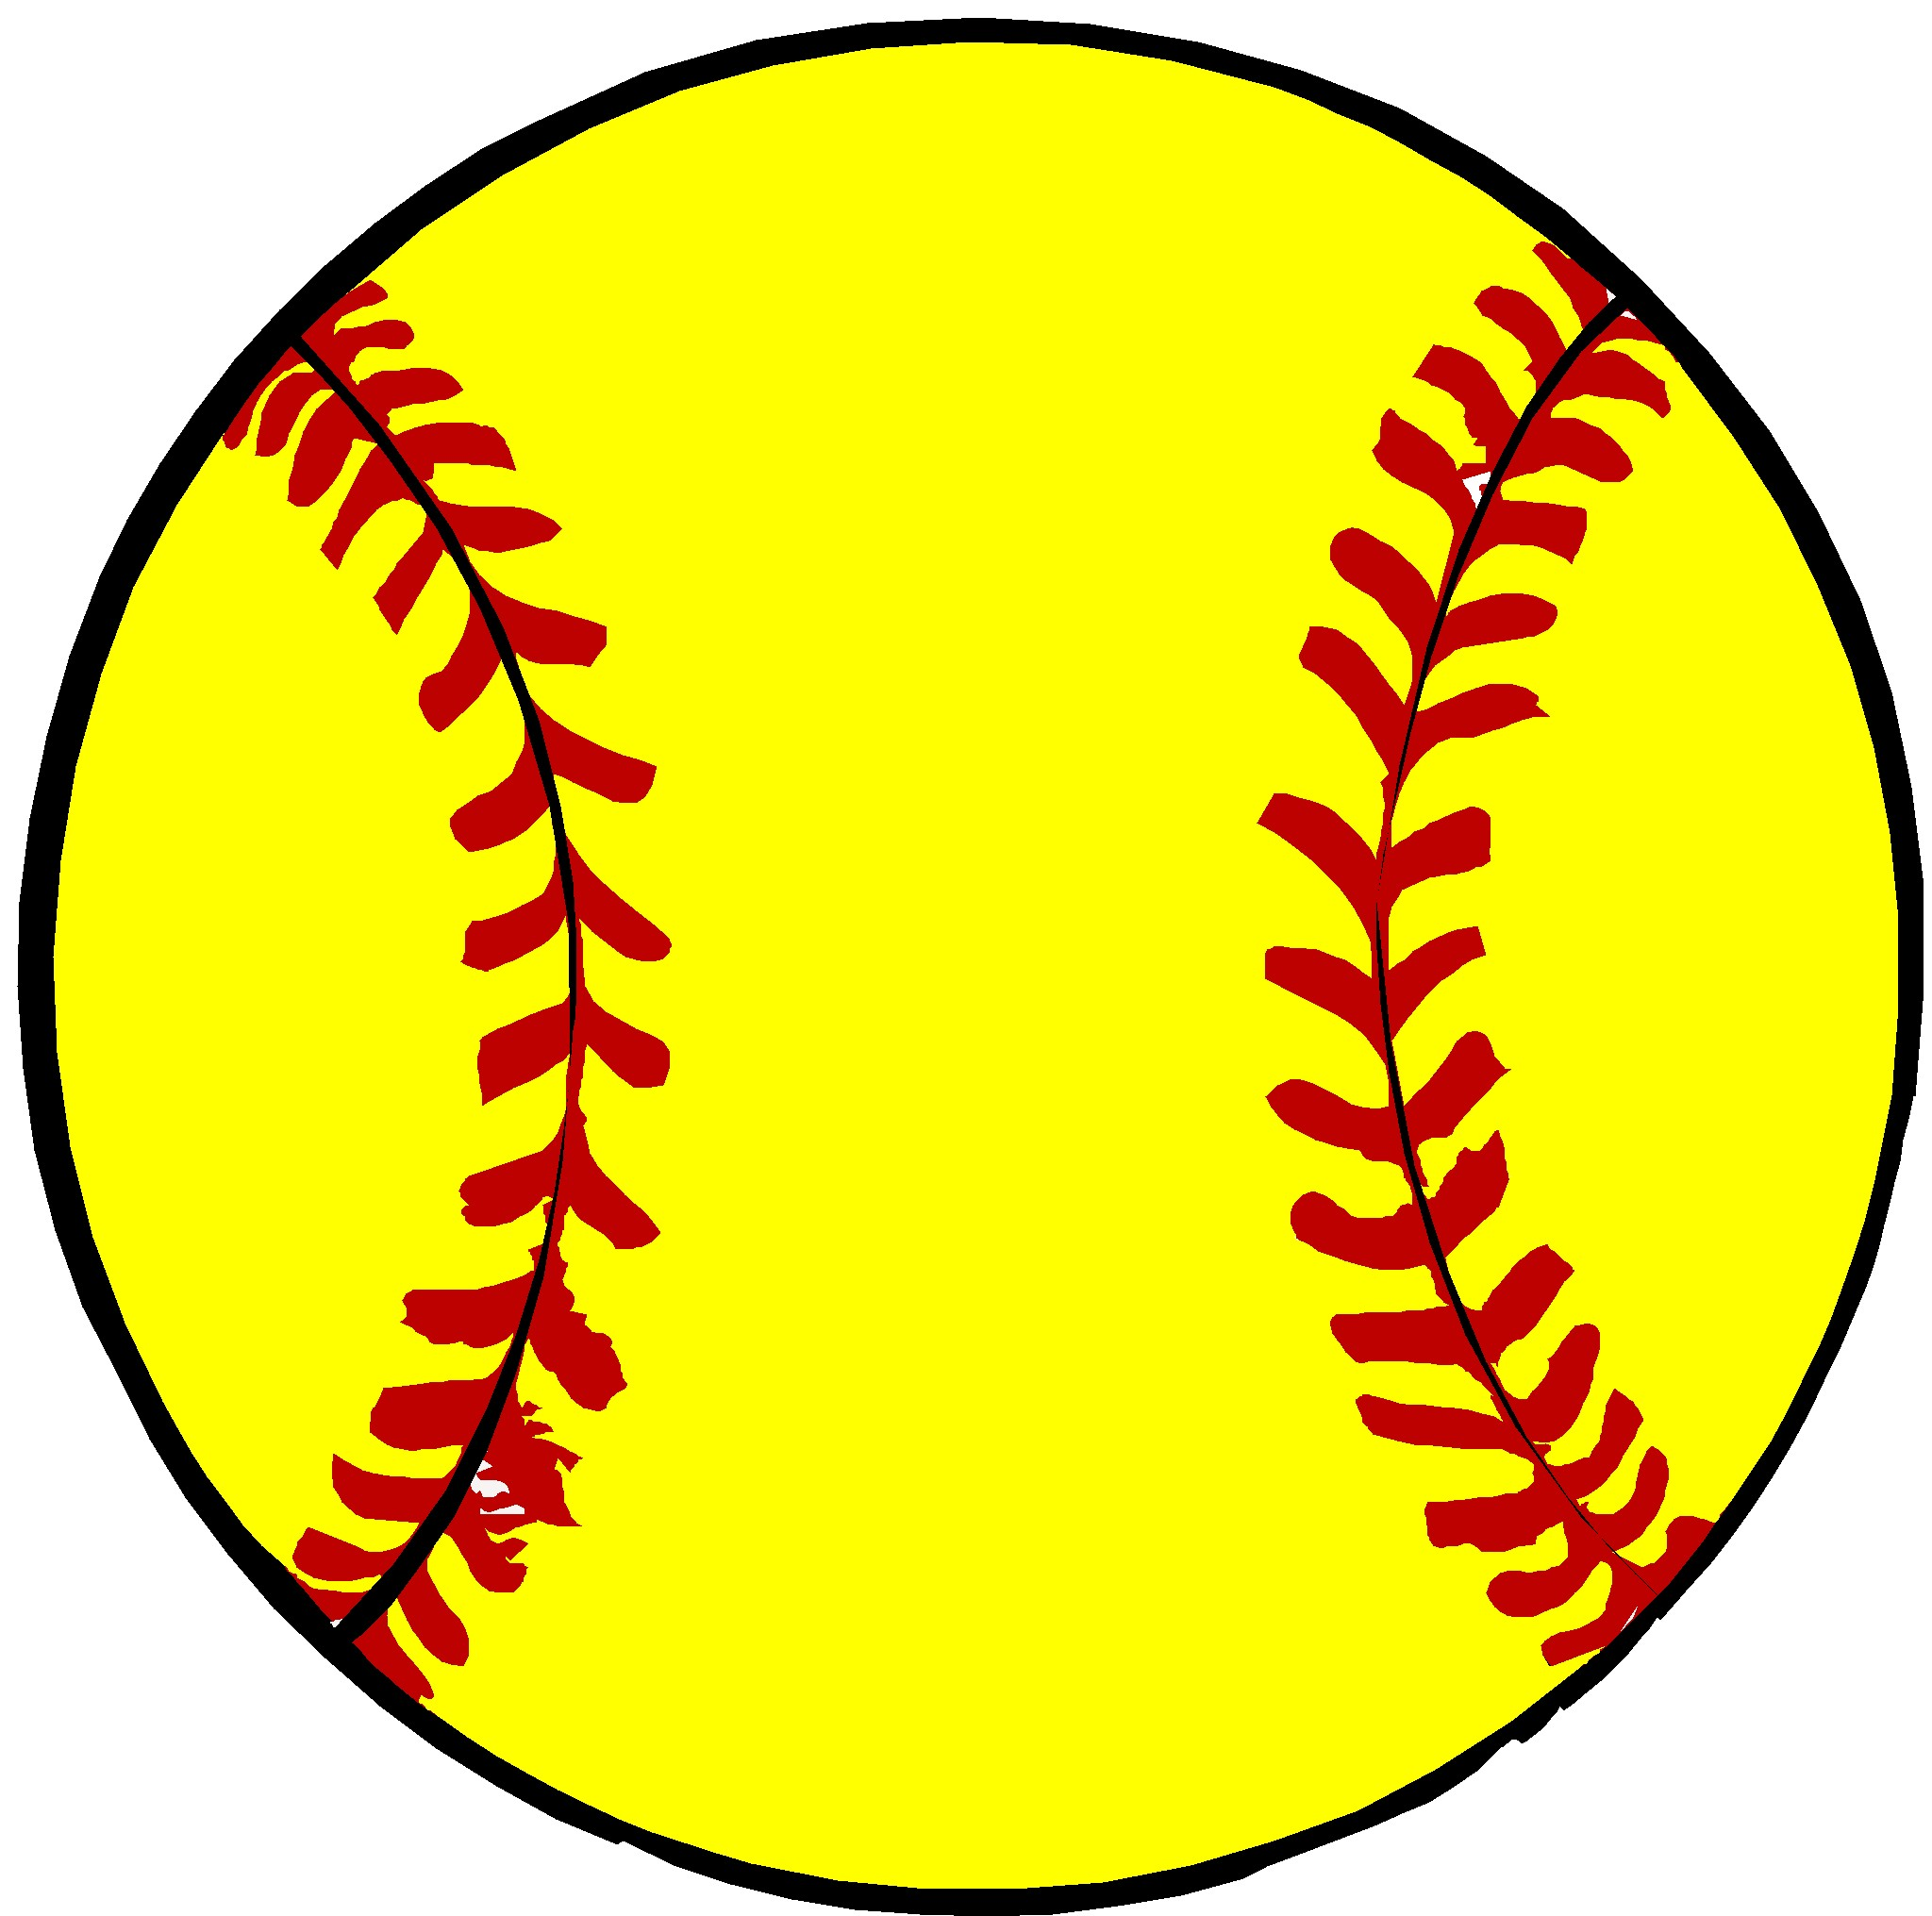 Softball Ball Clipart Free Clipart Images